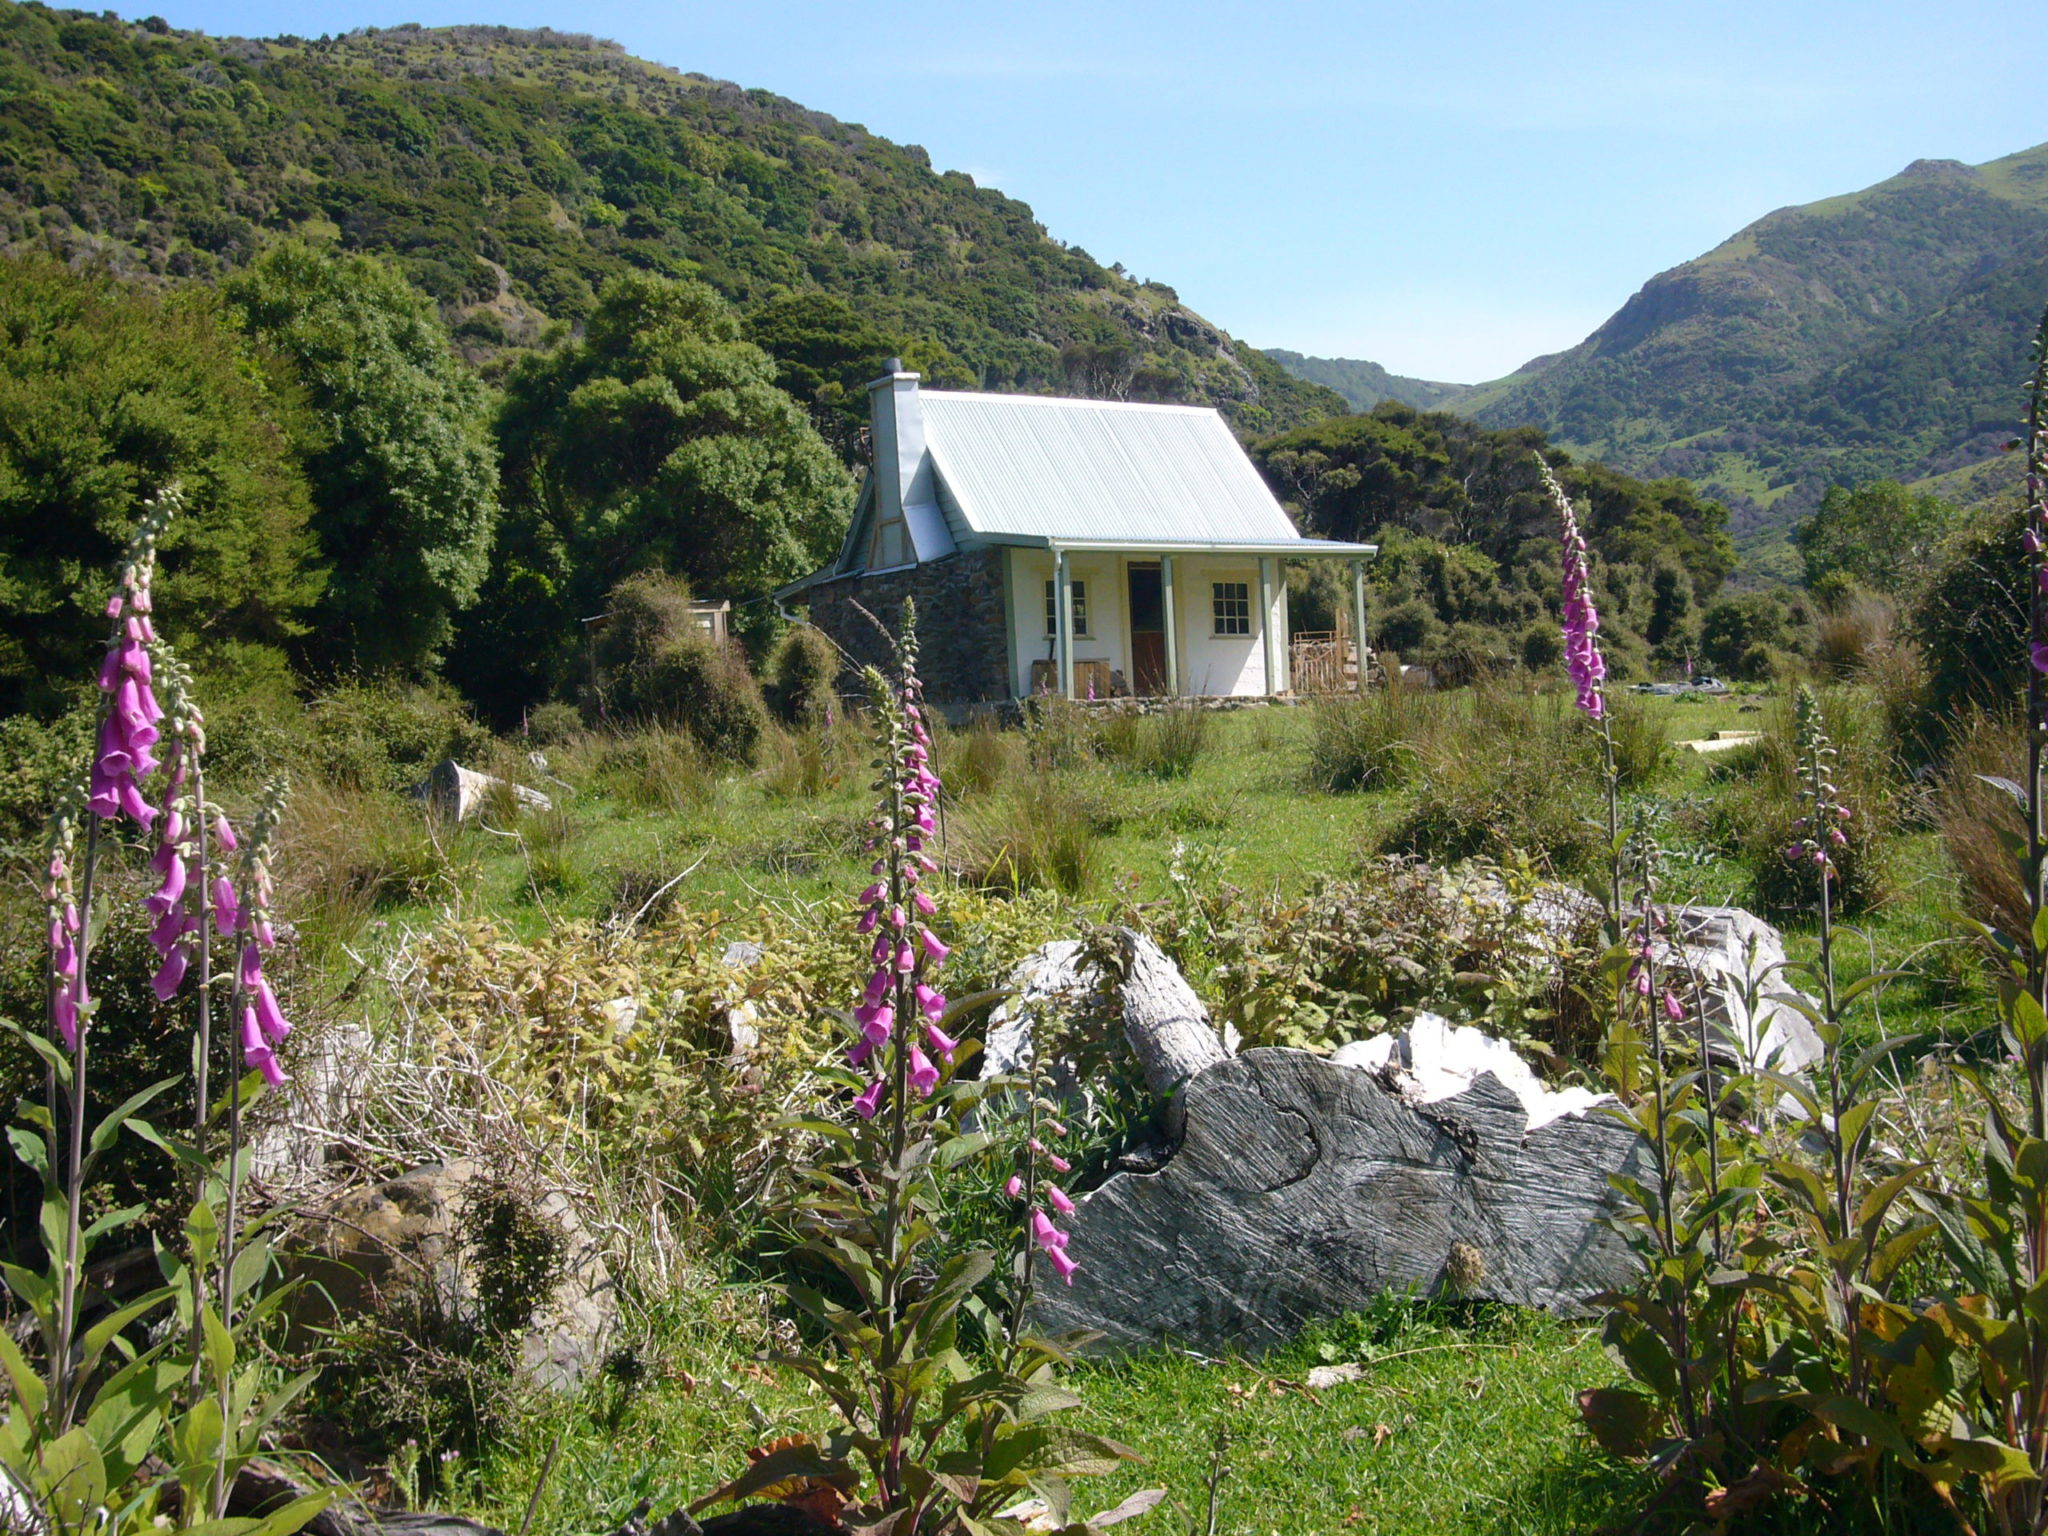 Pohatu Penguins accommodation: Overnight at NZ penguin colony